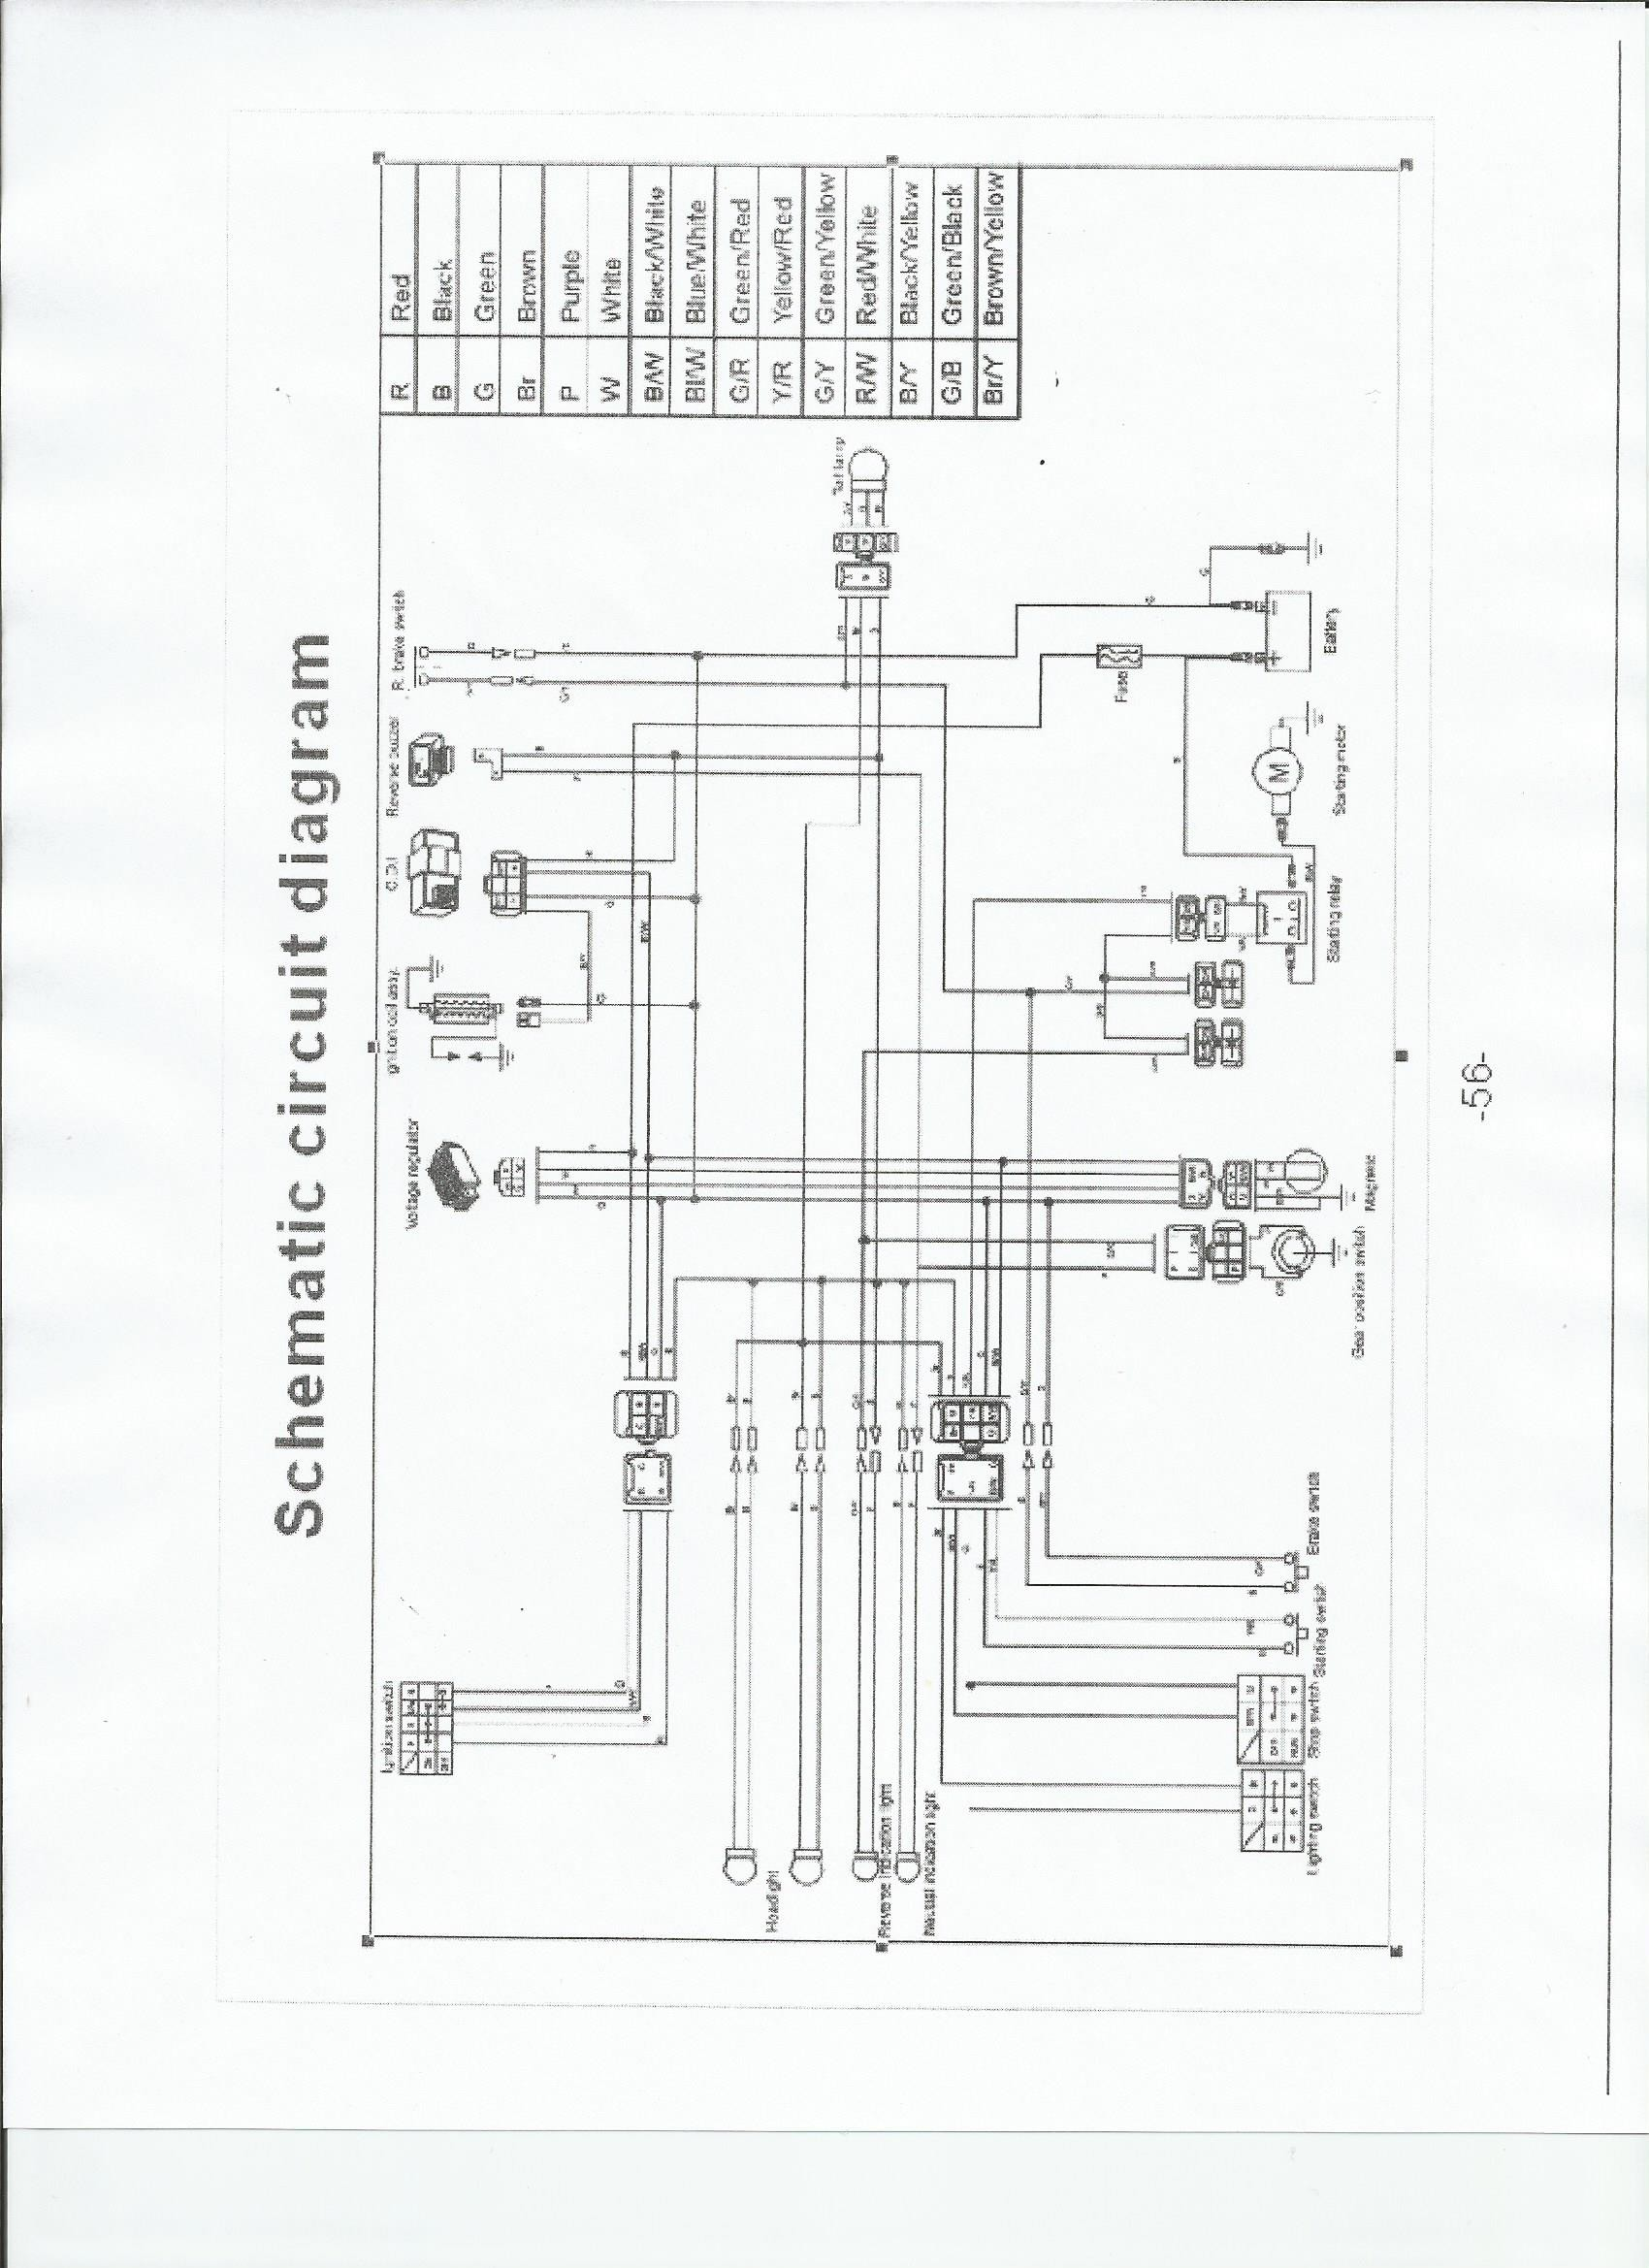 Cool Kazuma Go Kart Wiring Diagram Today Diagram Data Schema Wiring Digital Resources Bemuashebarightsorg